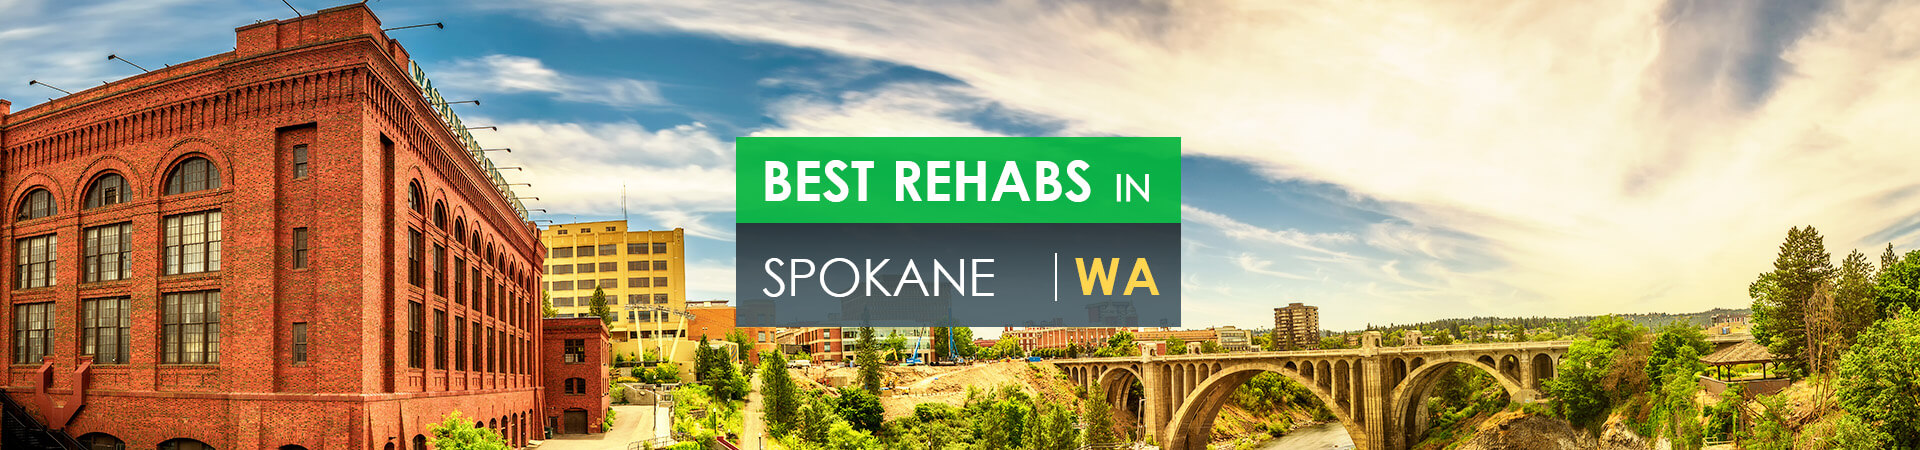 Best rehabs in Spokane, WA